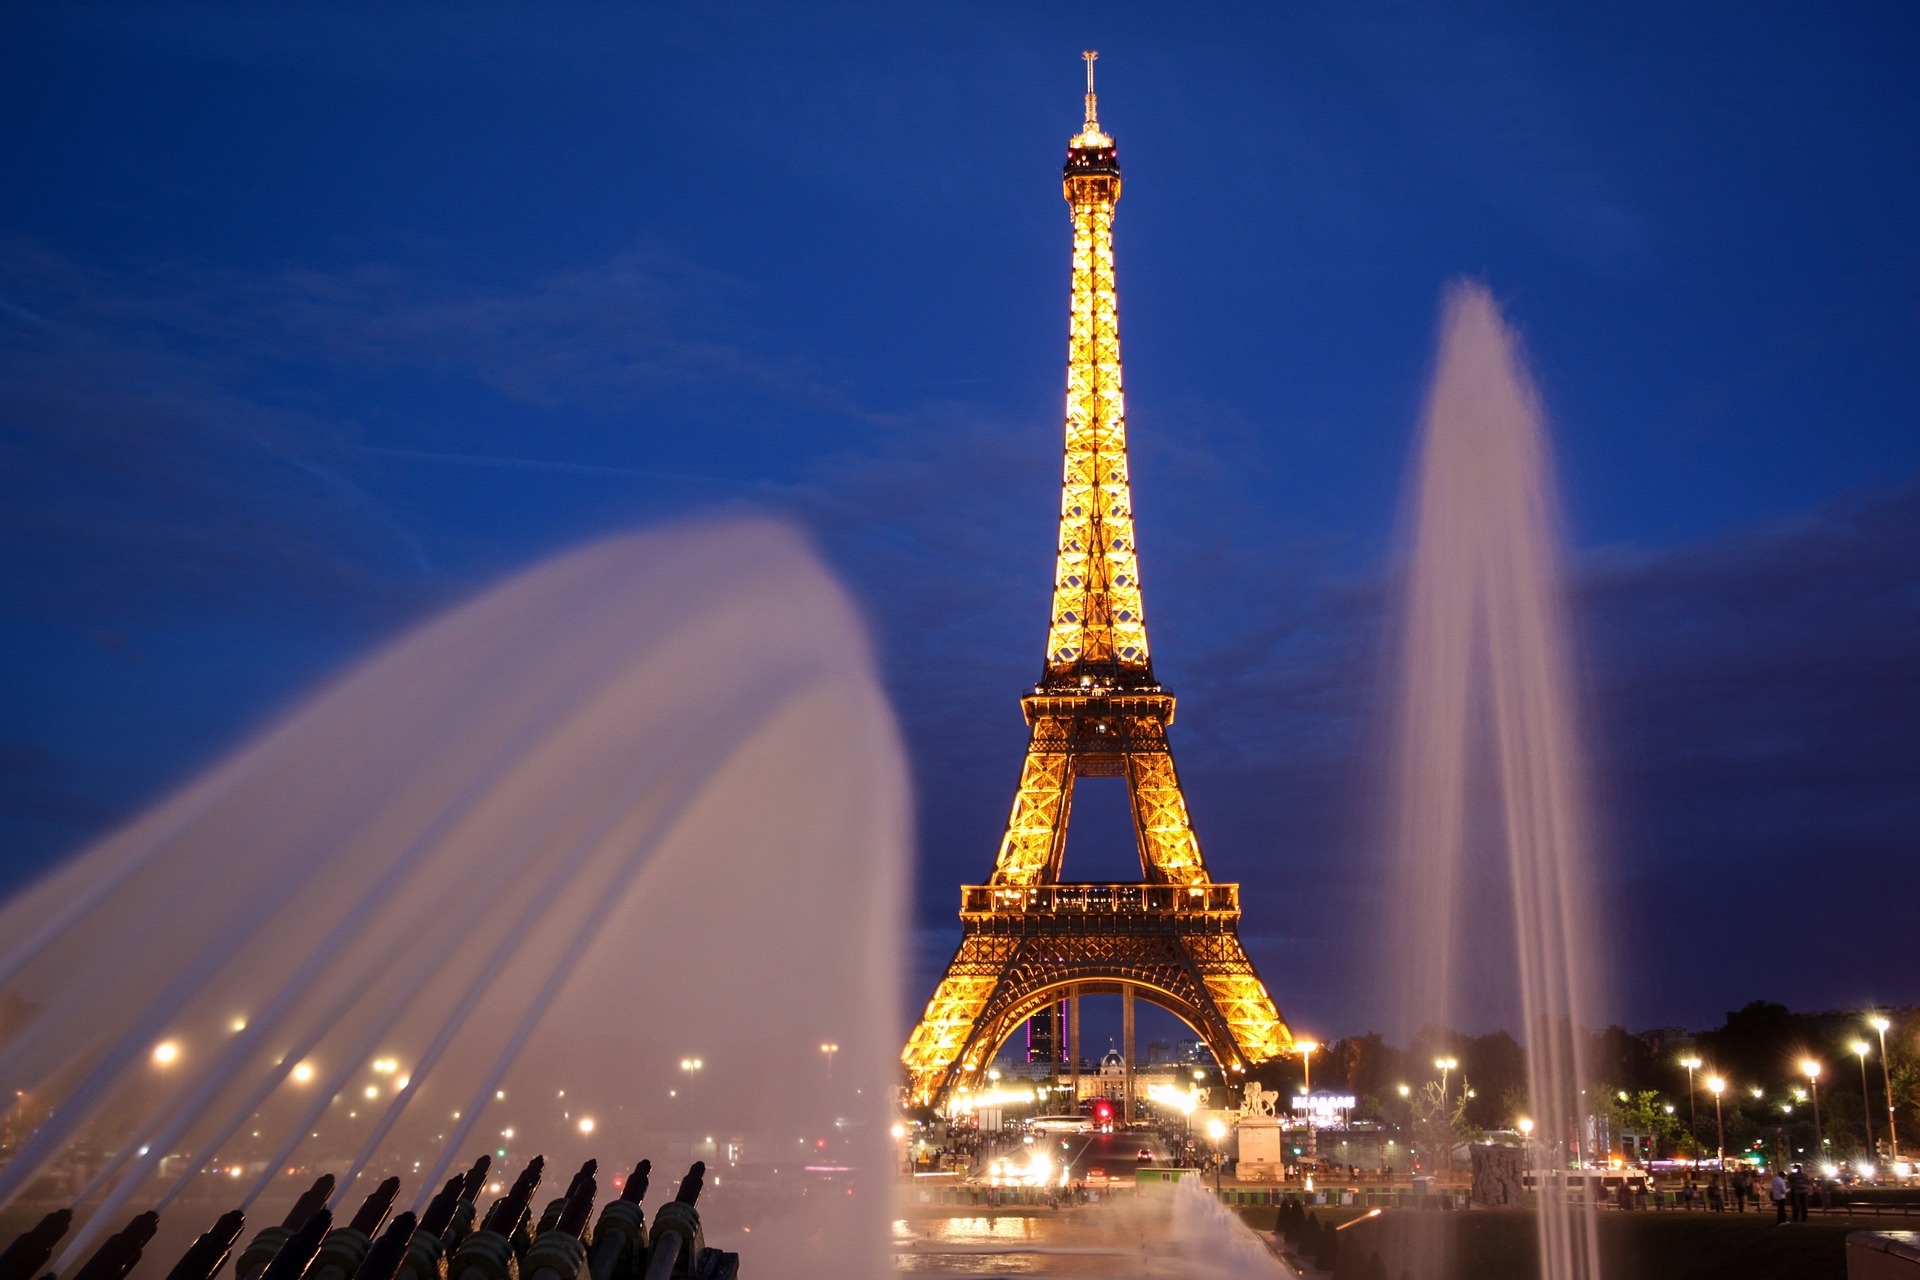 Eiffel Tower, Paris, France at night